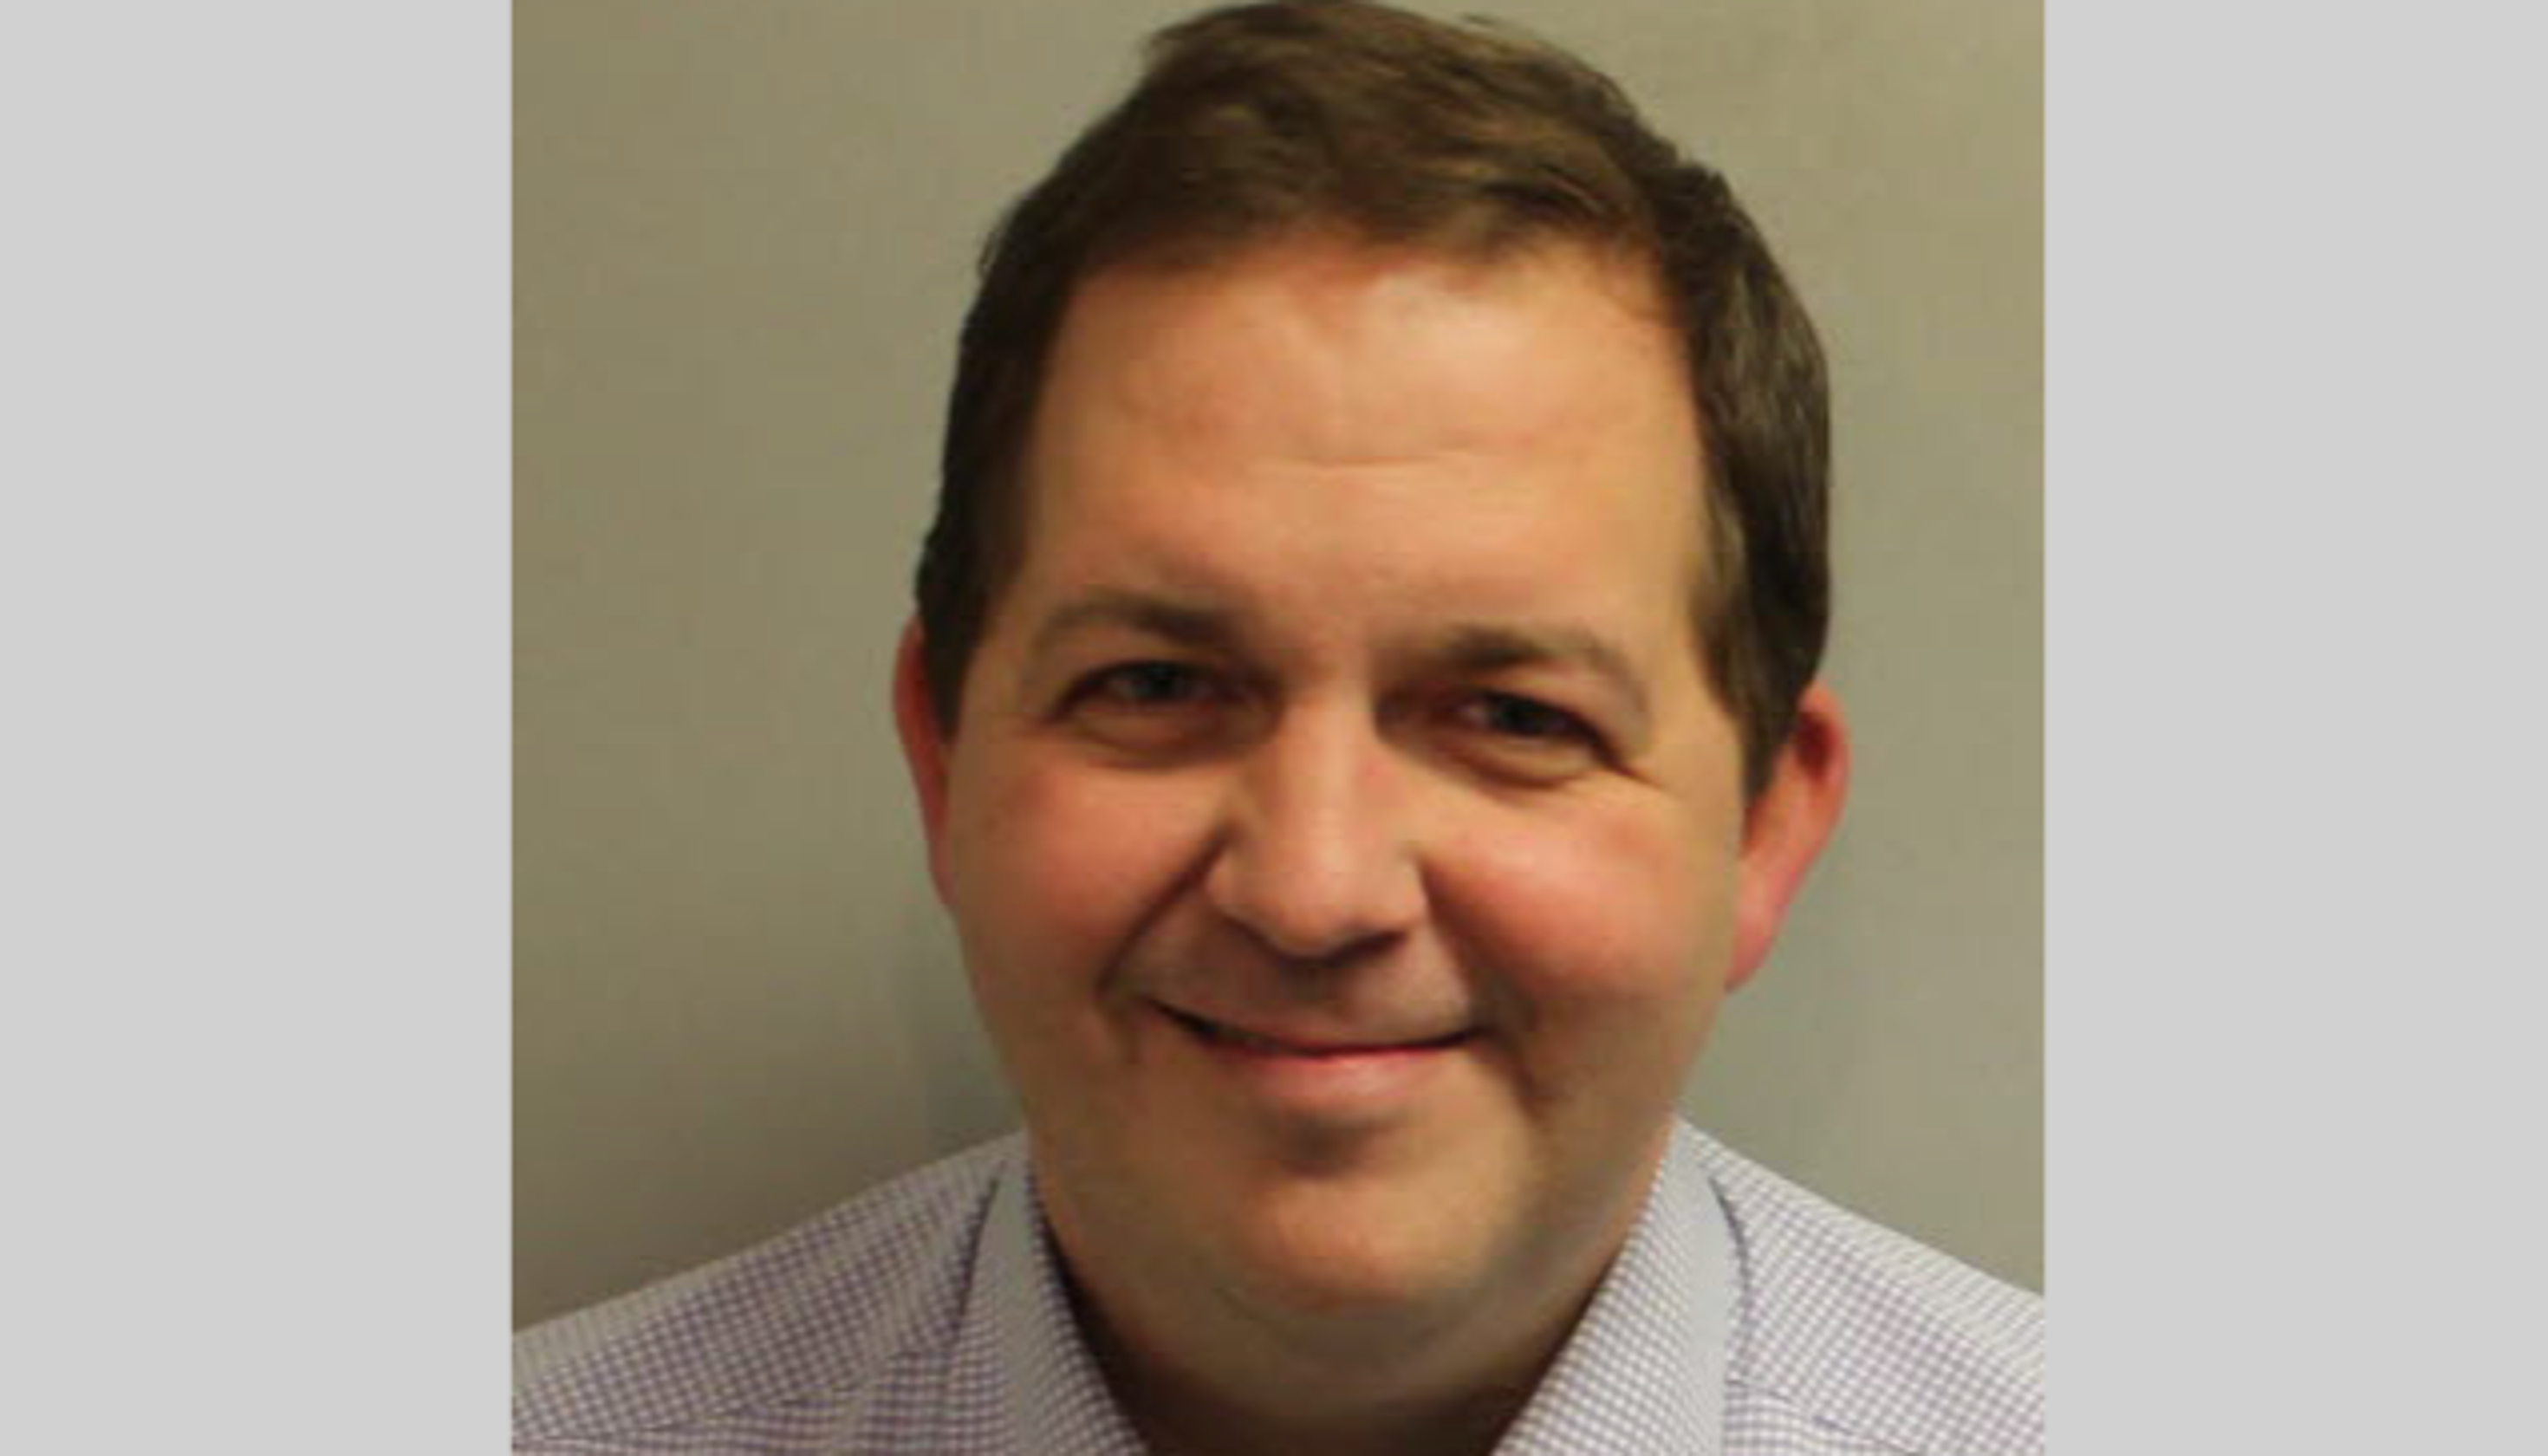 Evan Power, Leon GOP chief, arrested for DUI